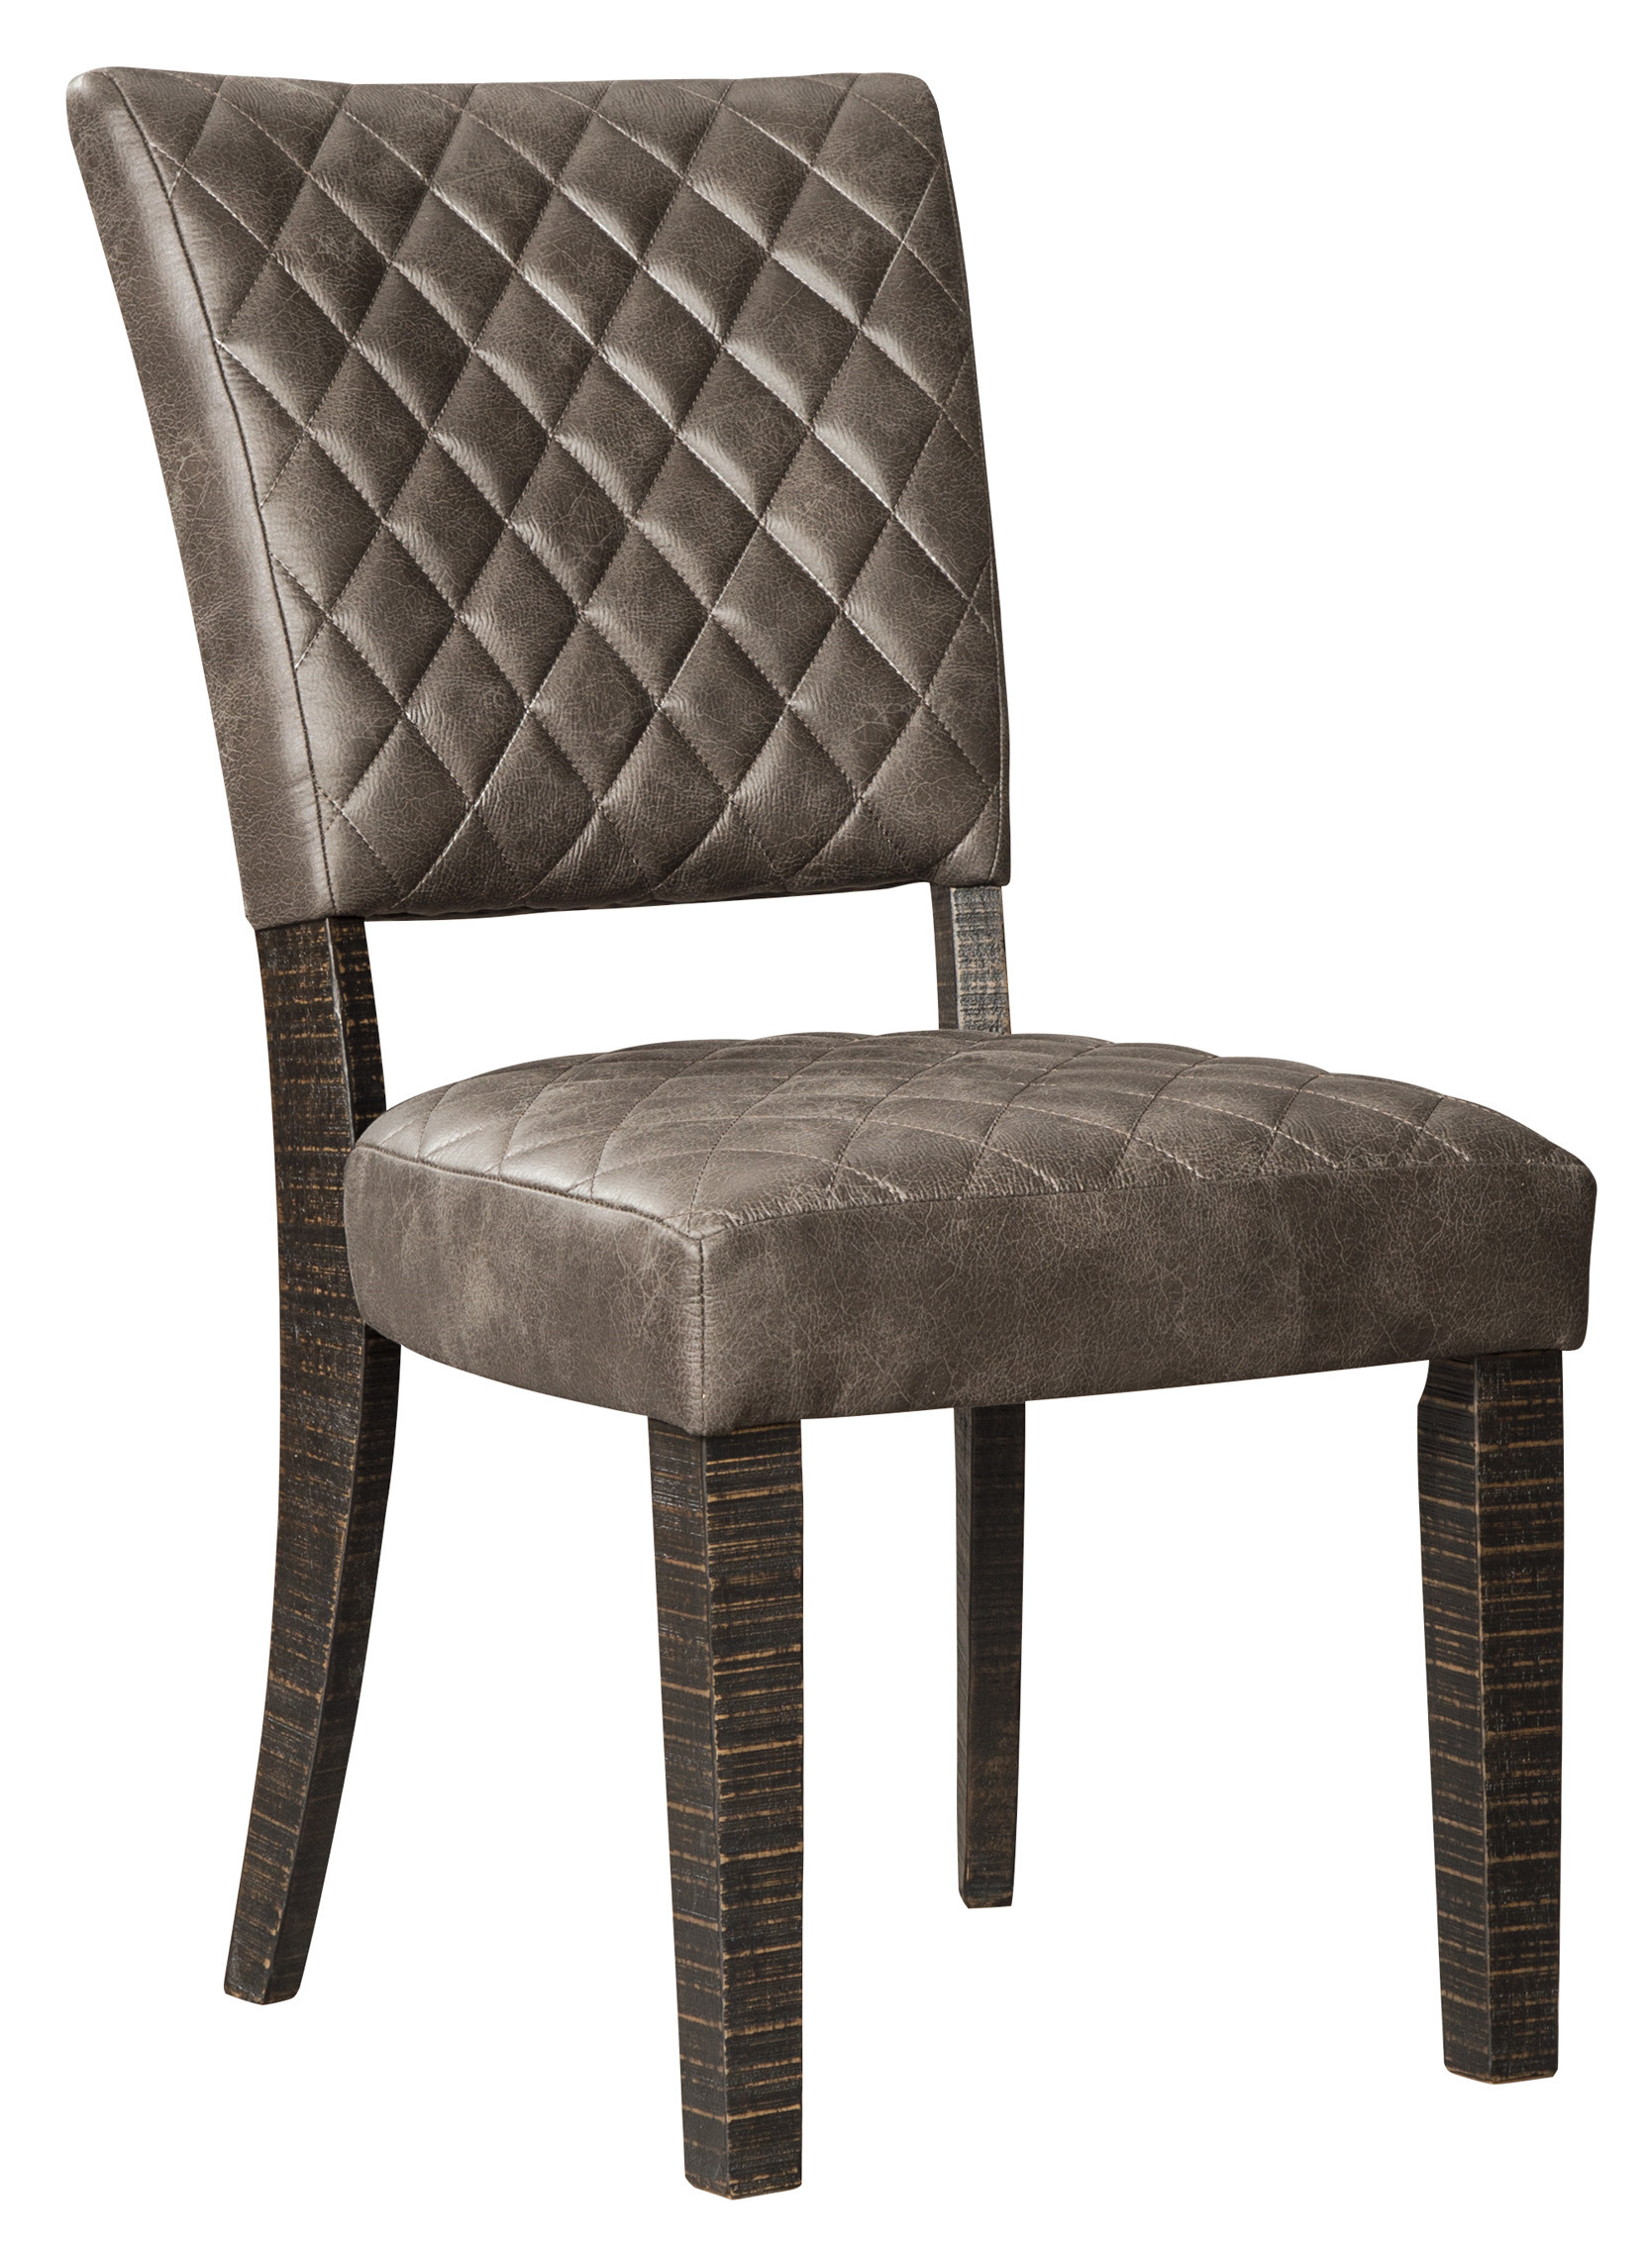 2 Ashley Furniture Baylow Upholstered Dining Side Chairs ...